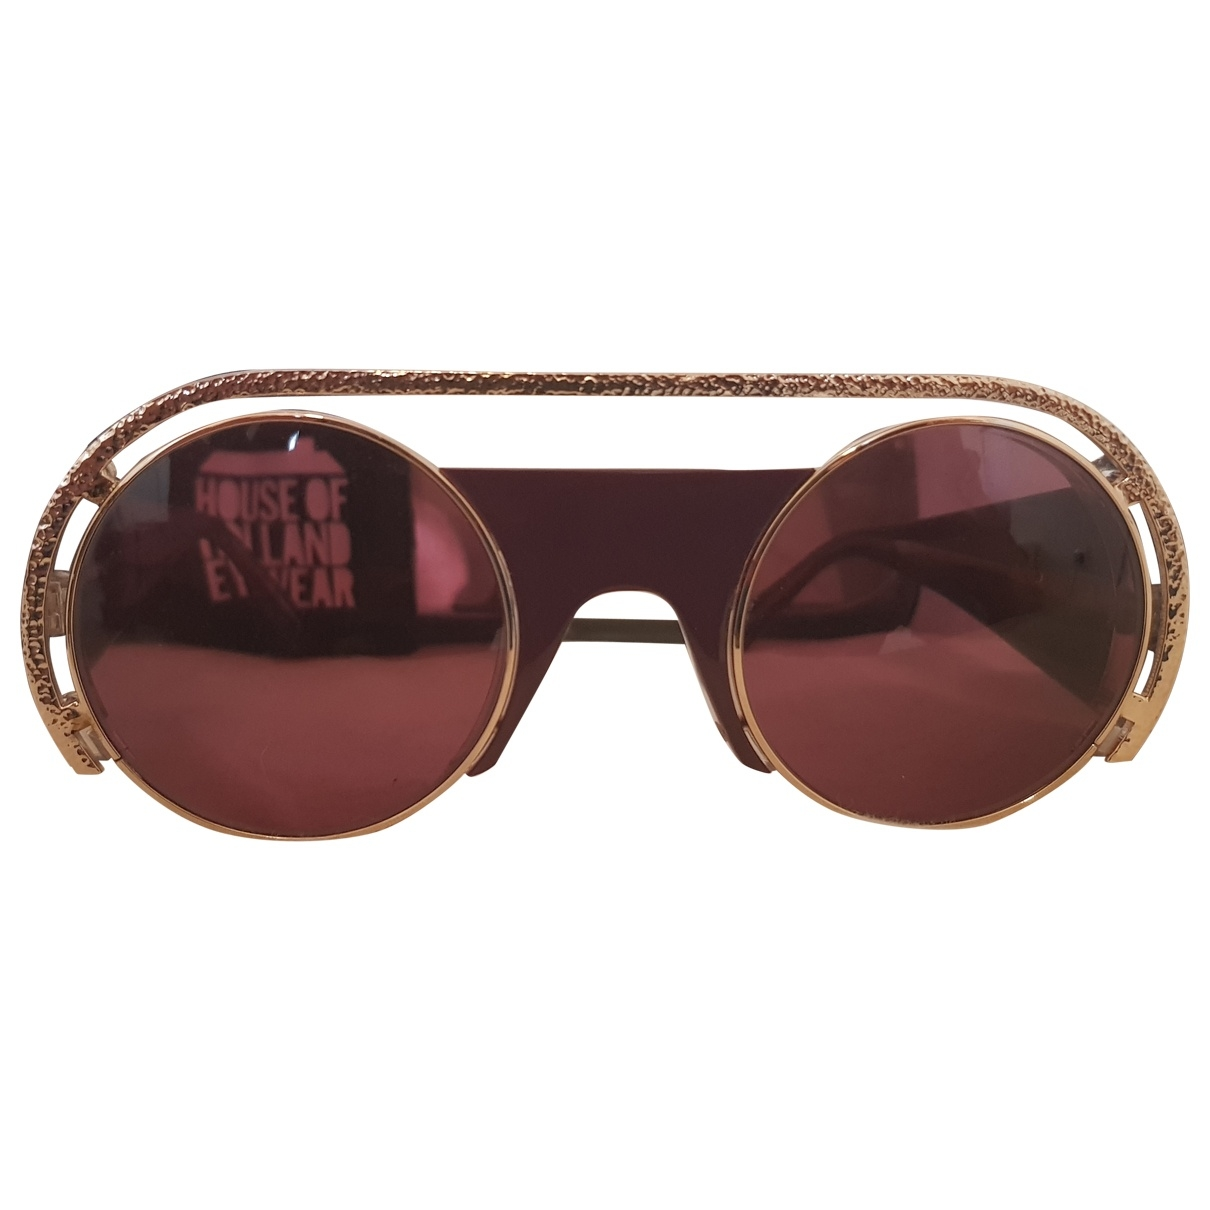 House Of Holland \N Purple Sunglasses for Women \N